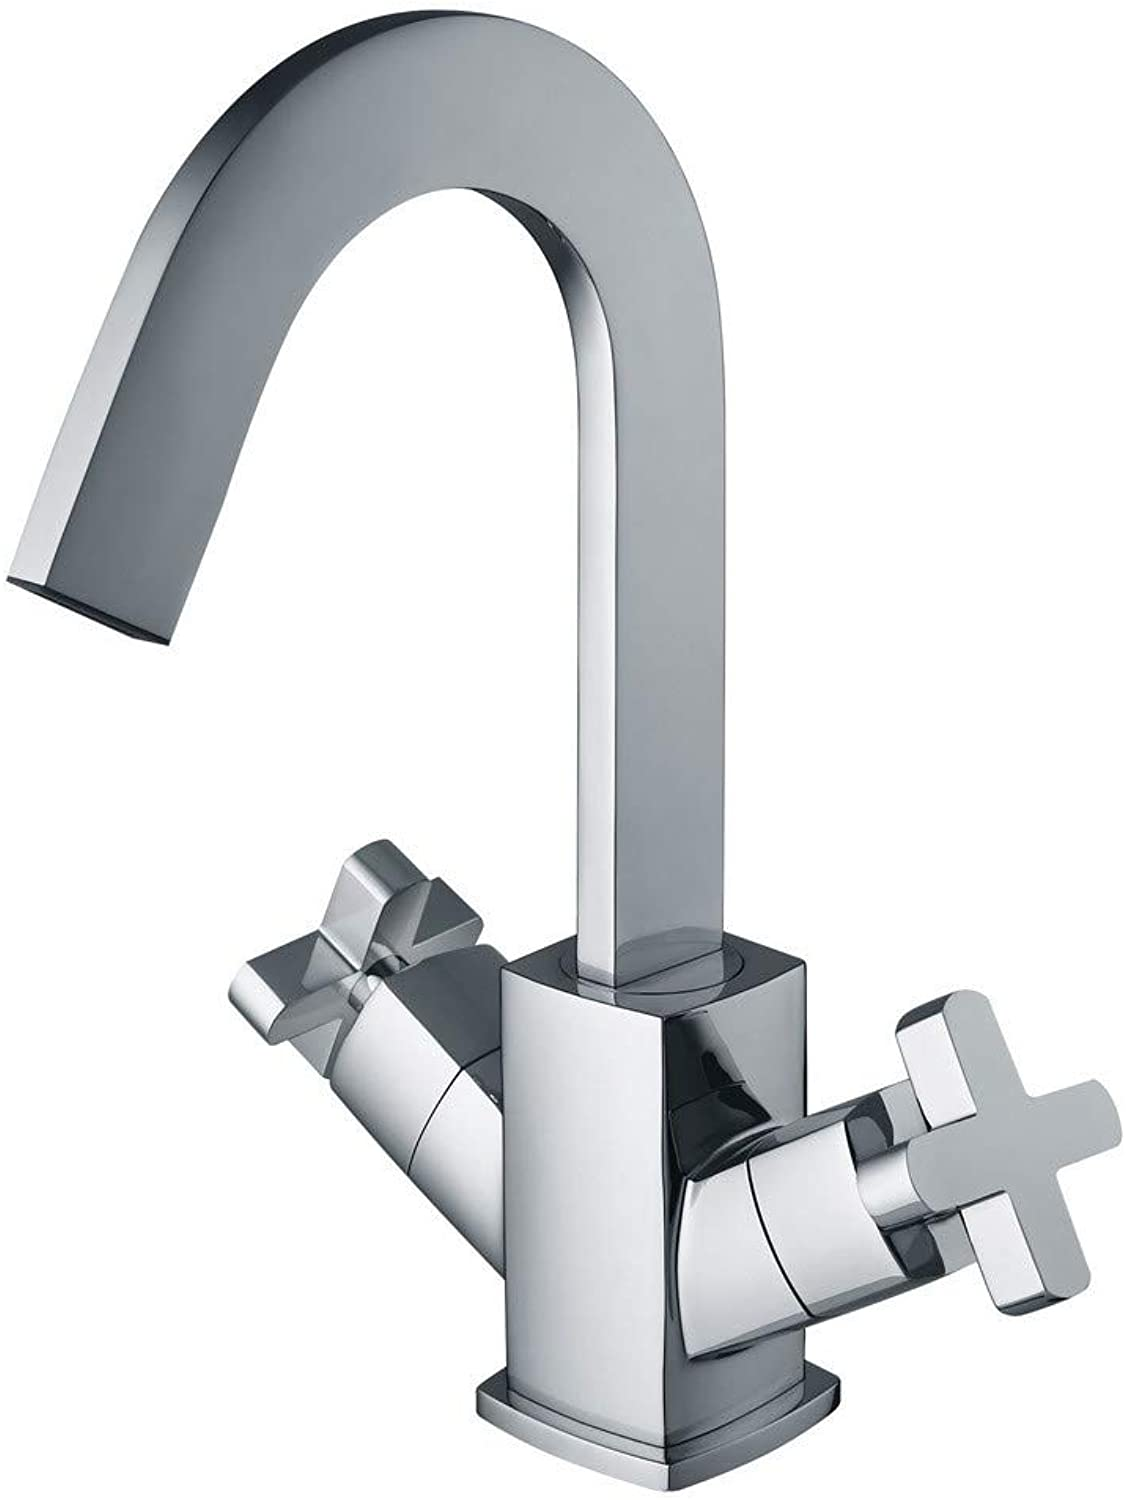 Ddlli Copper Single Hole Waterfall Wash Basin Basin Faucet Cross Double Handle Hot and Cold Water Mixing Multi-Layer Plating Silver